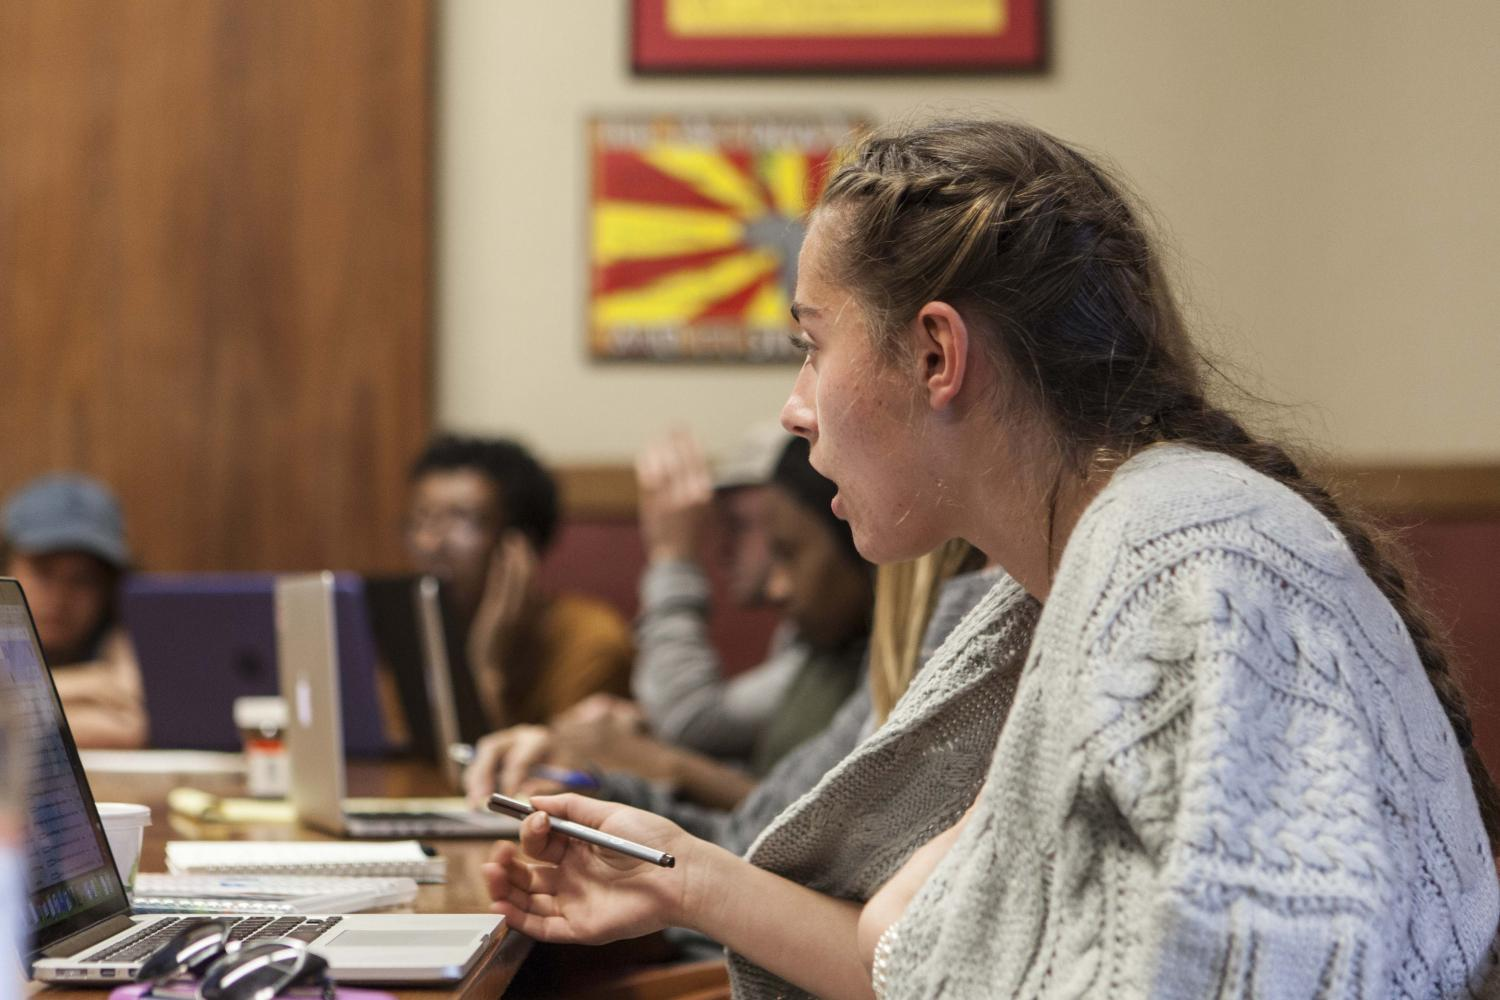 Student Senator and College sophomore Meg Parker speaks at Sunday's Student Senate plenary. Senators are drafting a proposal for a Central Budgeting Committee that will allow students, faculty and staff to participate in the College's financial decision-making processes under a nondisclosure agreement.